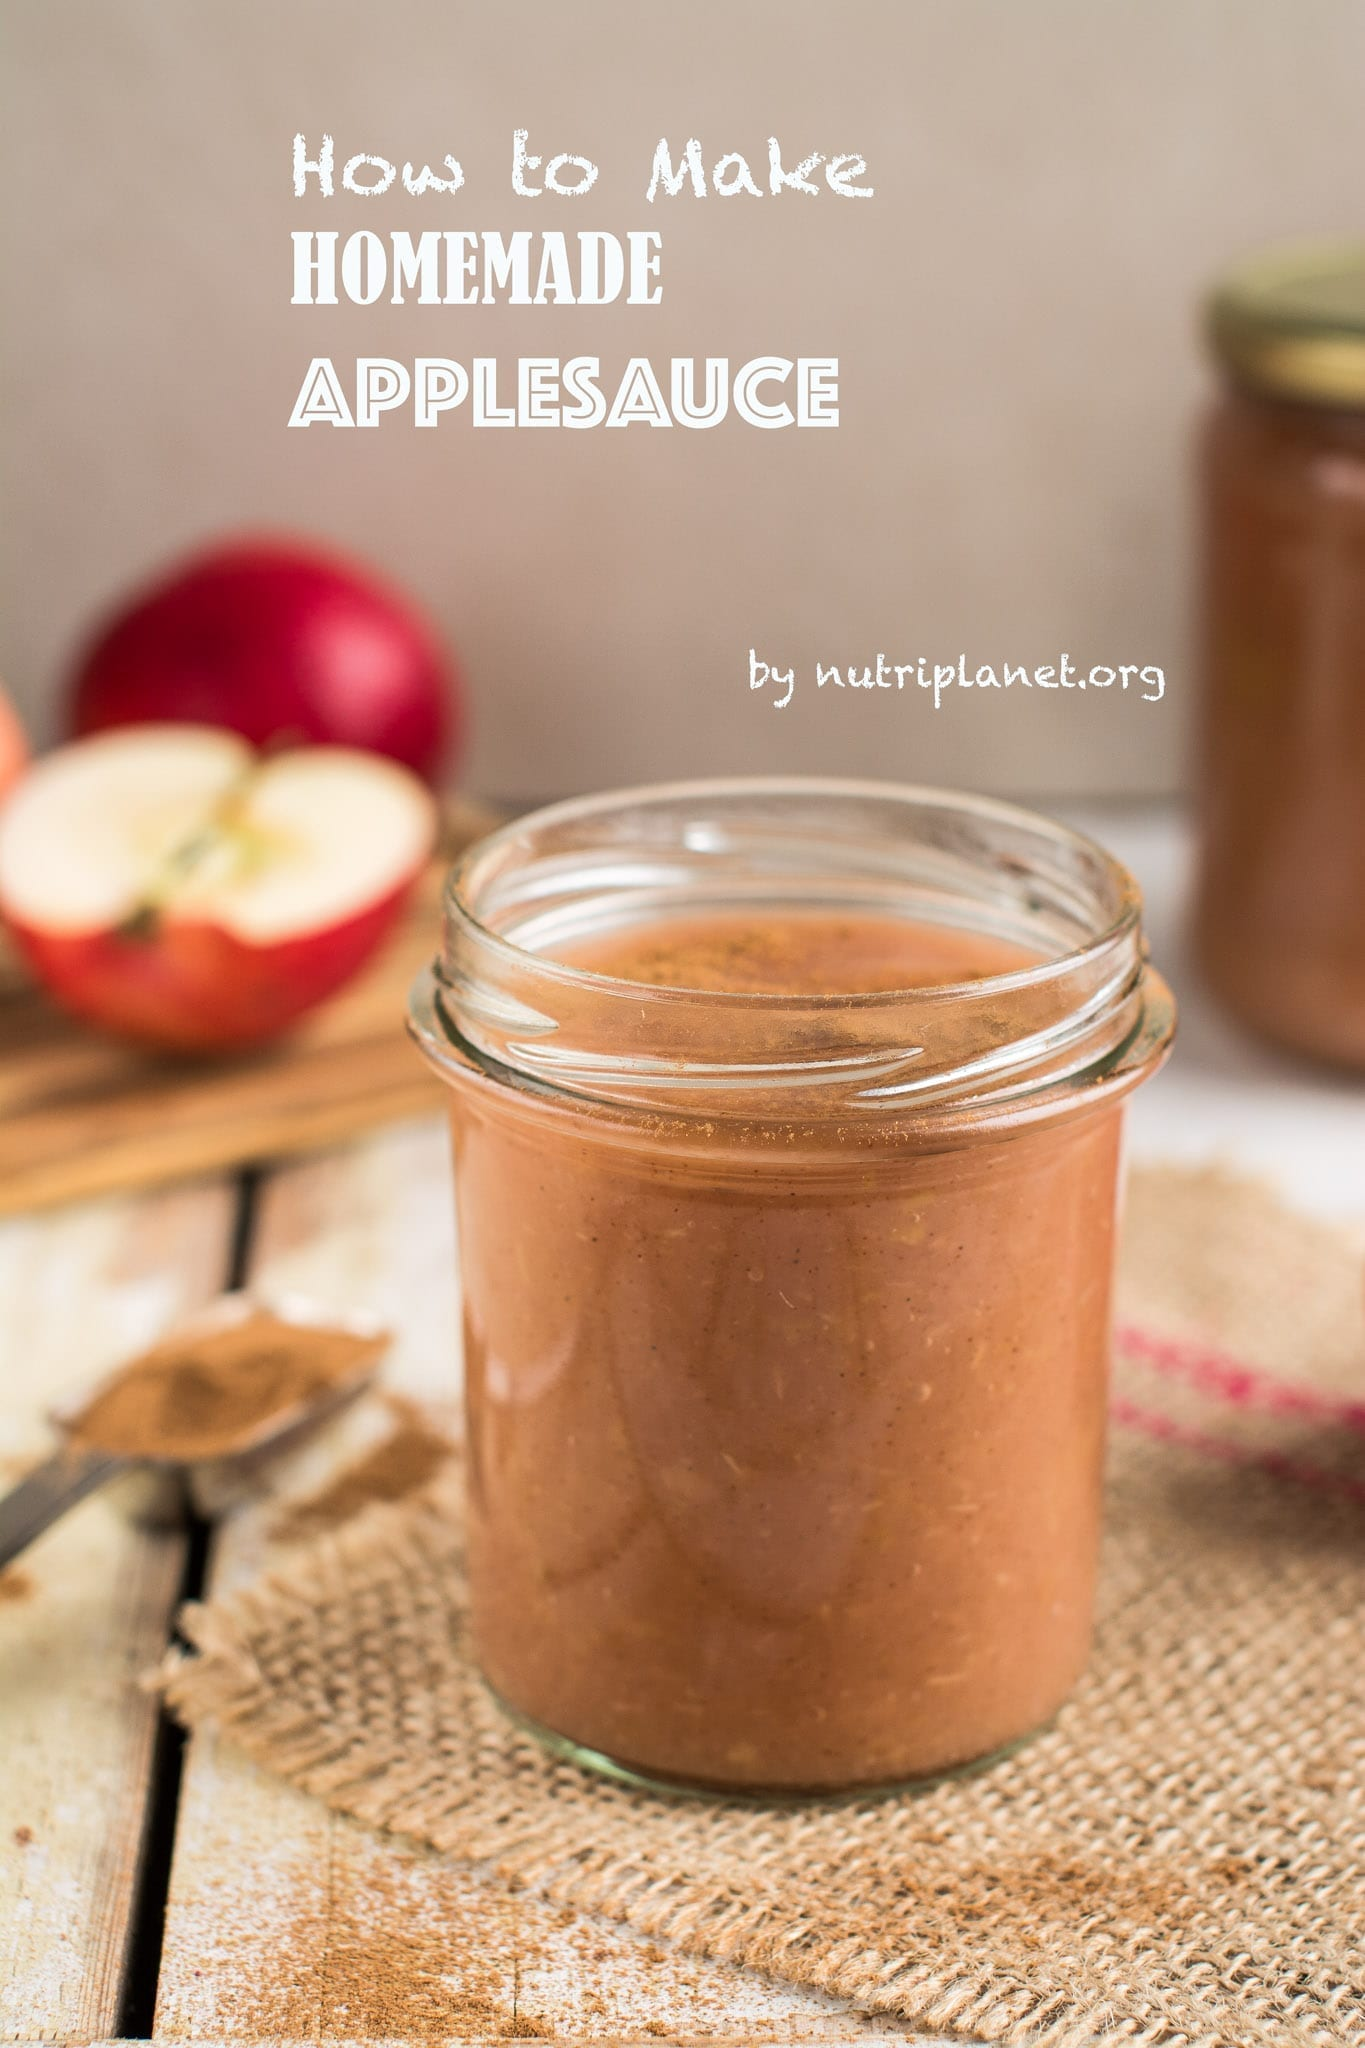 How to Make Homemade Applesauce for Canning